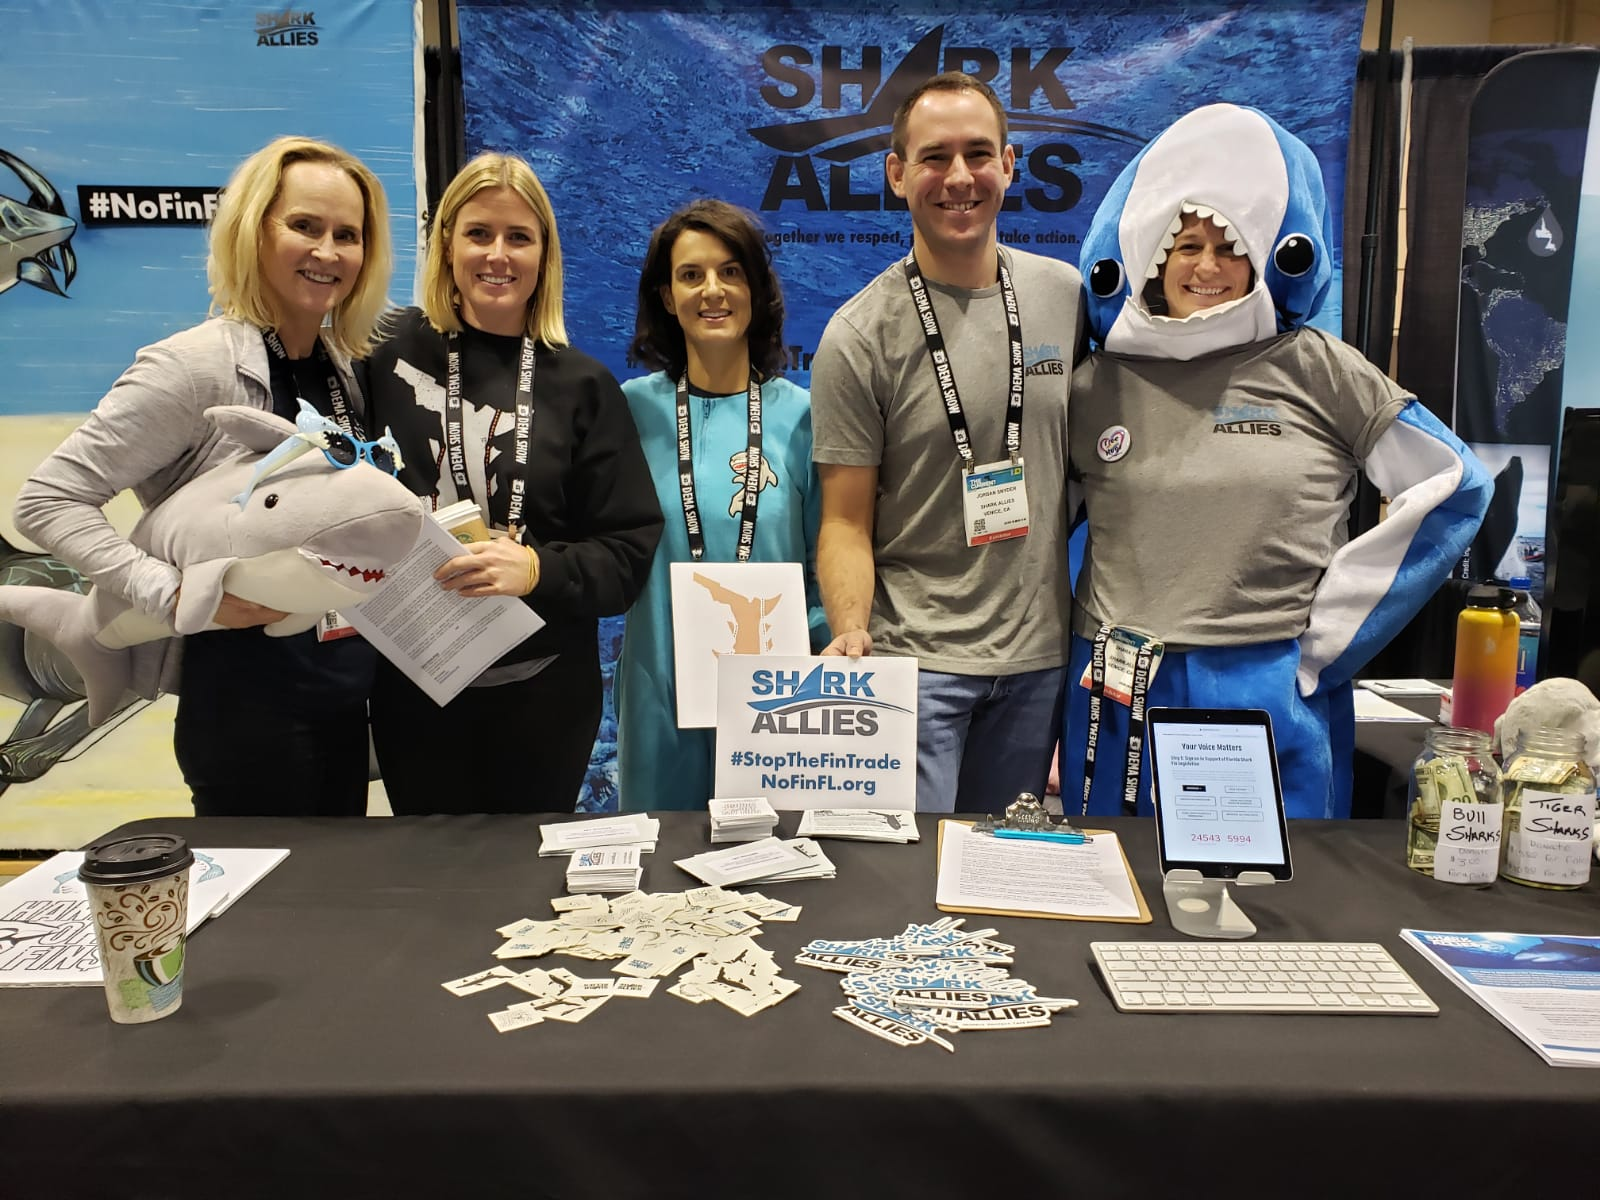 Shark Allies at DEMA Show 2019